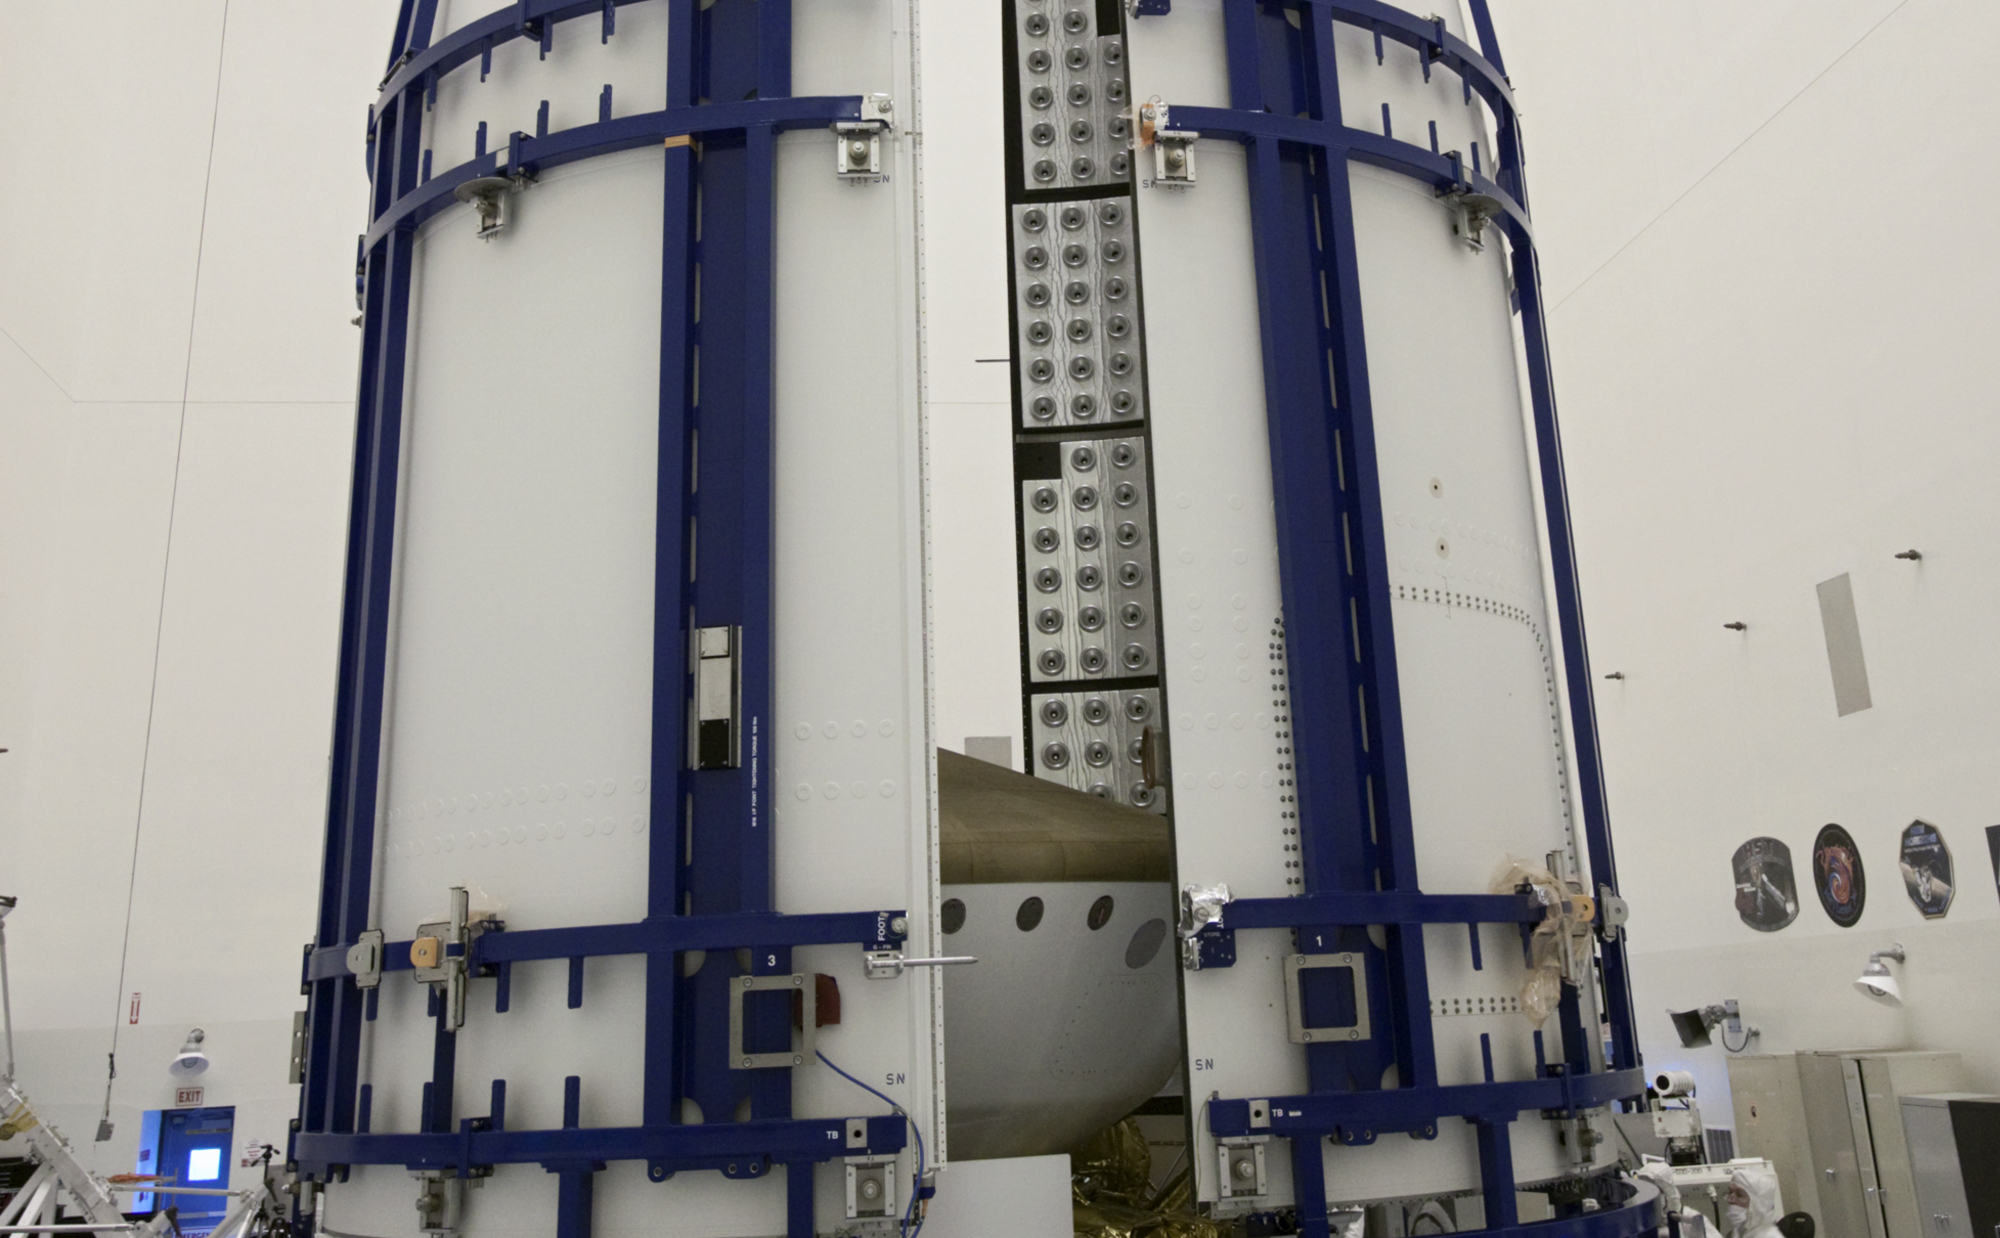 In the Payload Hazardous Servicing Facility at NASA's Kennedy Space Center in Florida, sections of an Atlas V rocket payload fairing obscure NASA's Mars Science Laboratory (MSL) from view as they close in around it.